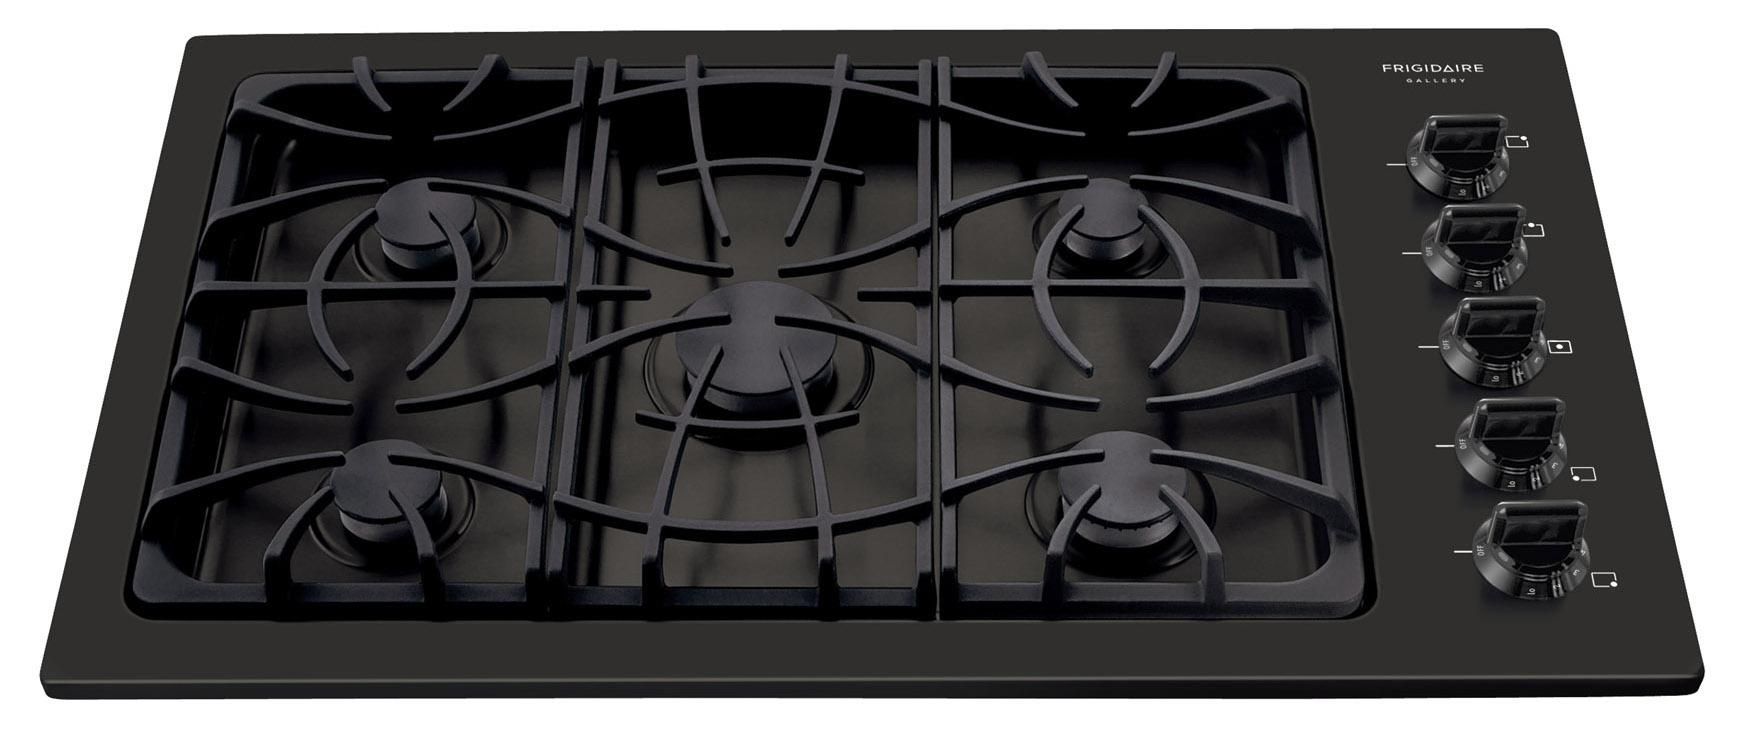 "Frigidaire Gas Cooktop Gallery 36"" Built-In Gas Cooktop - Item Number: FGGC3645KB"